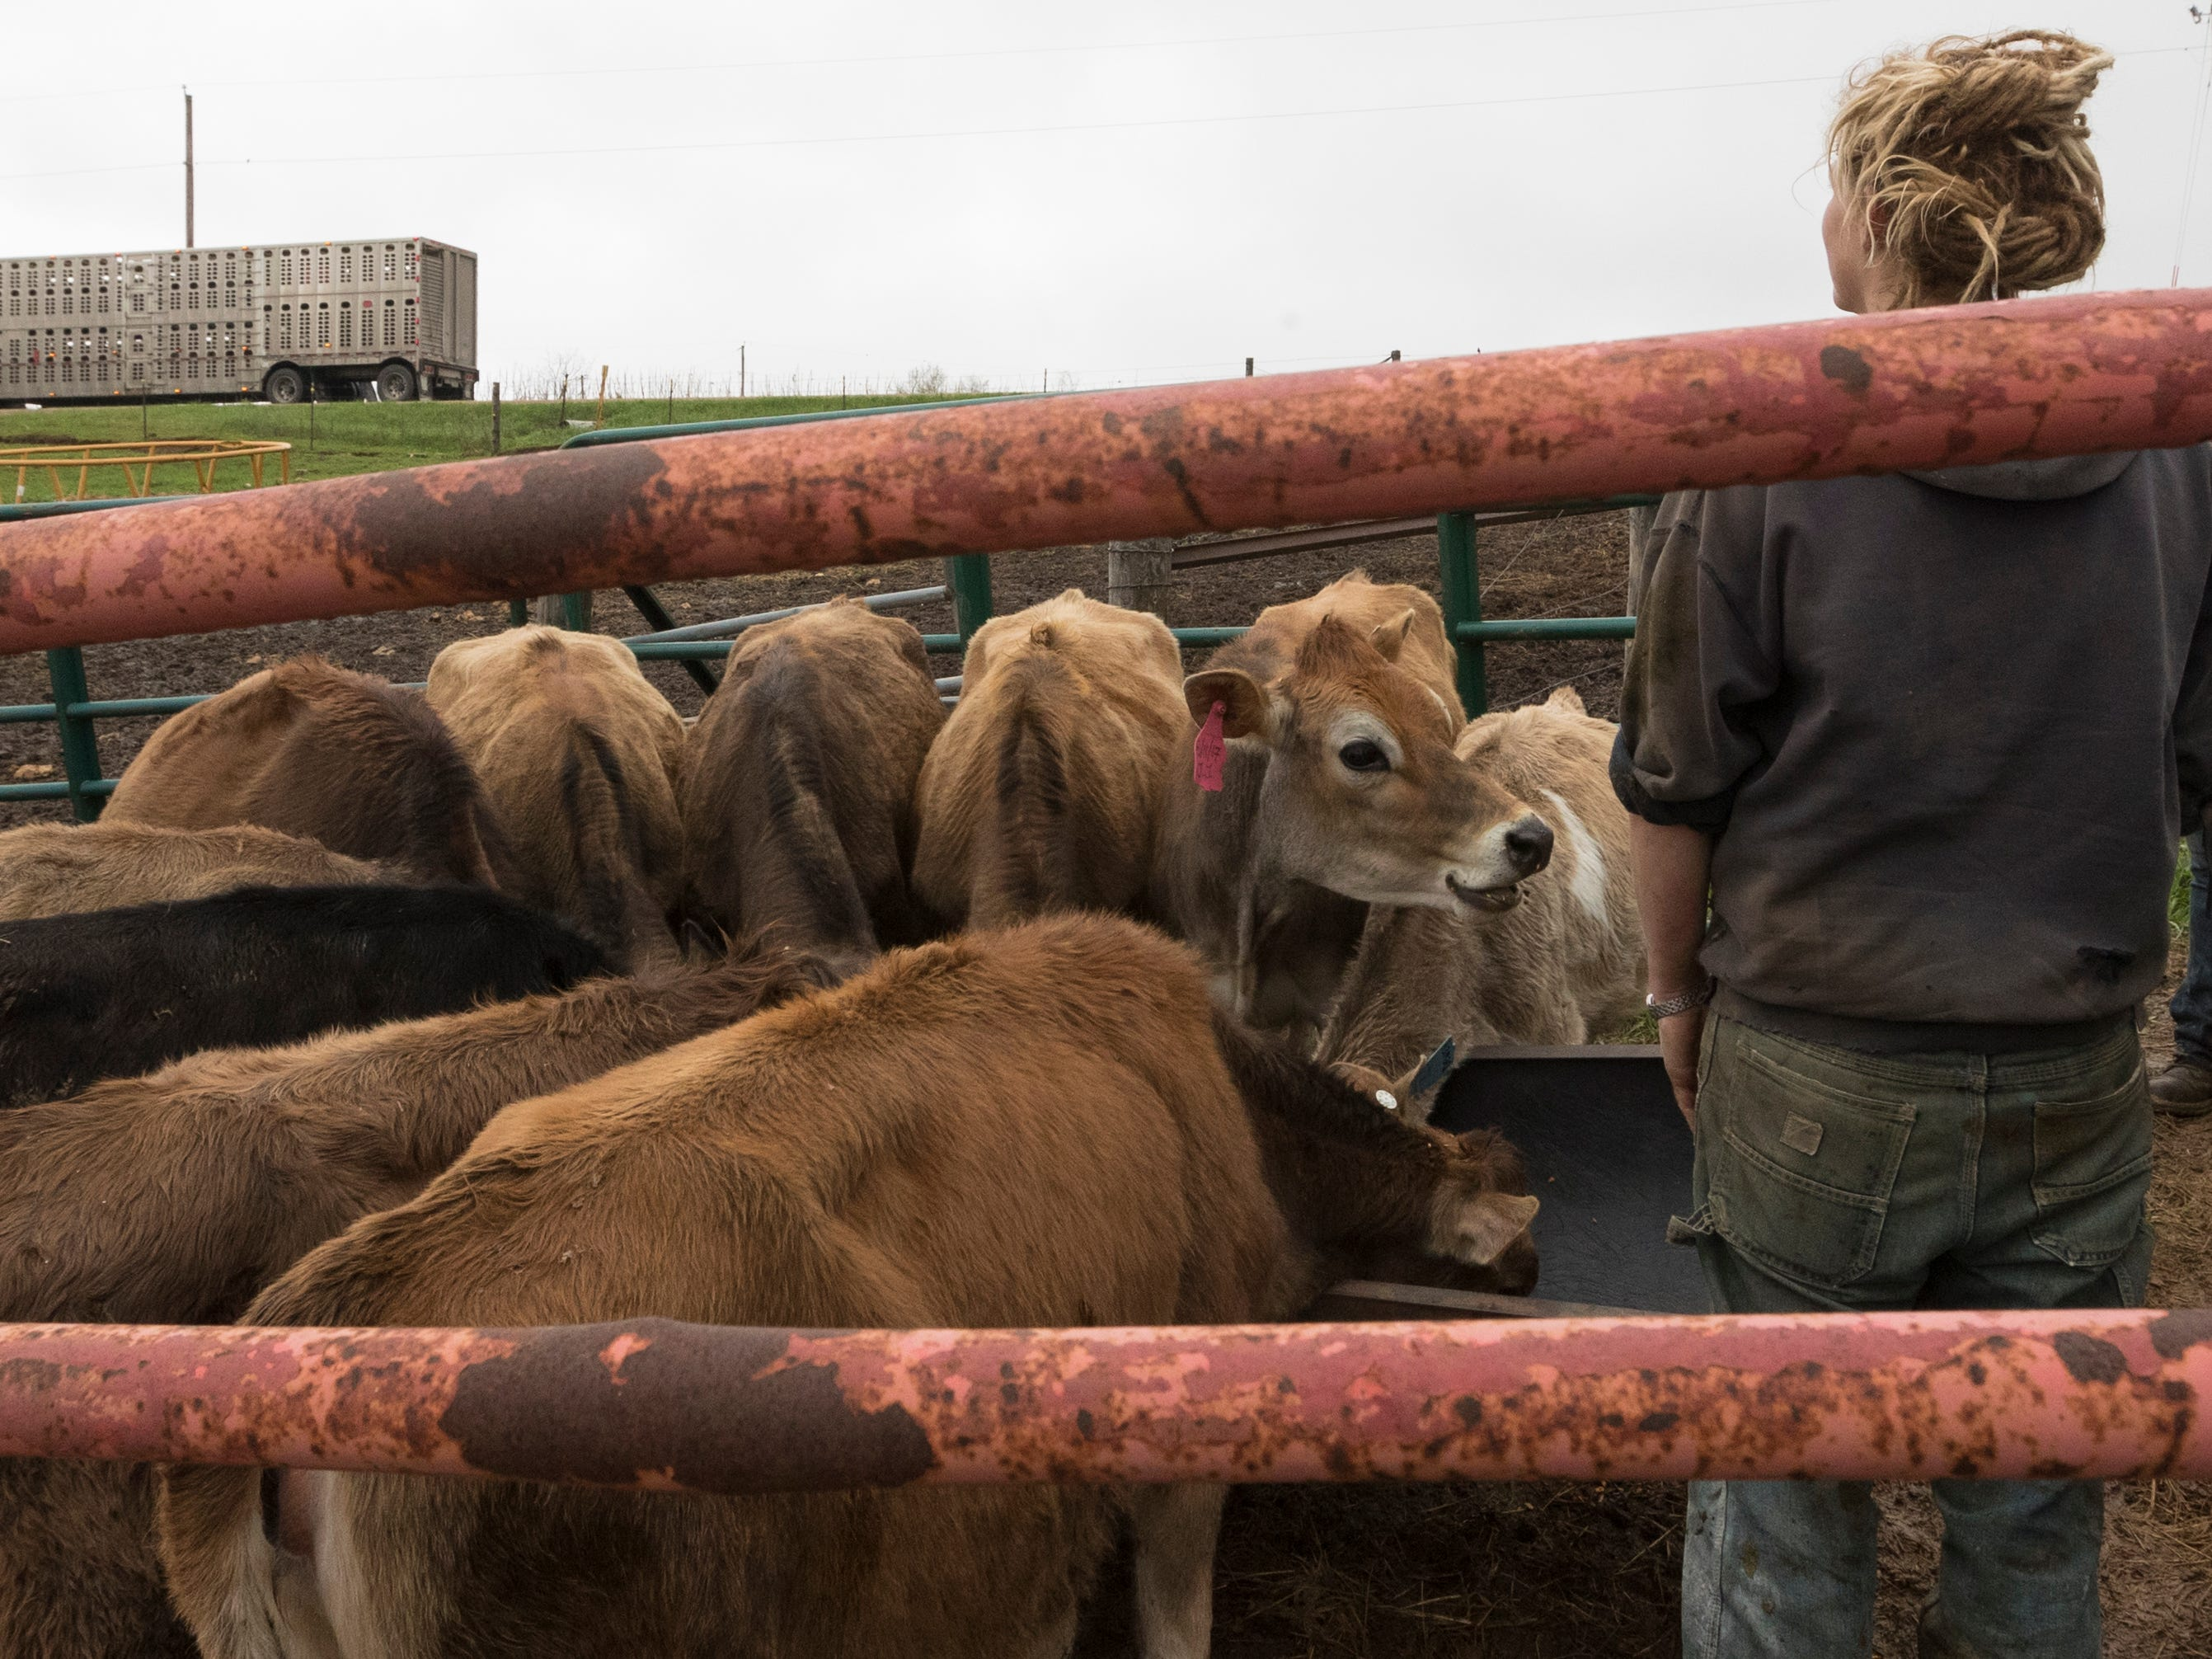 Emily Harris takes a final look as a truck departs with most of her herd.